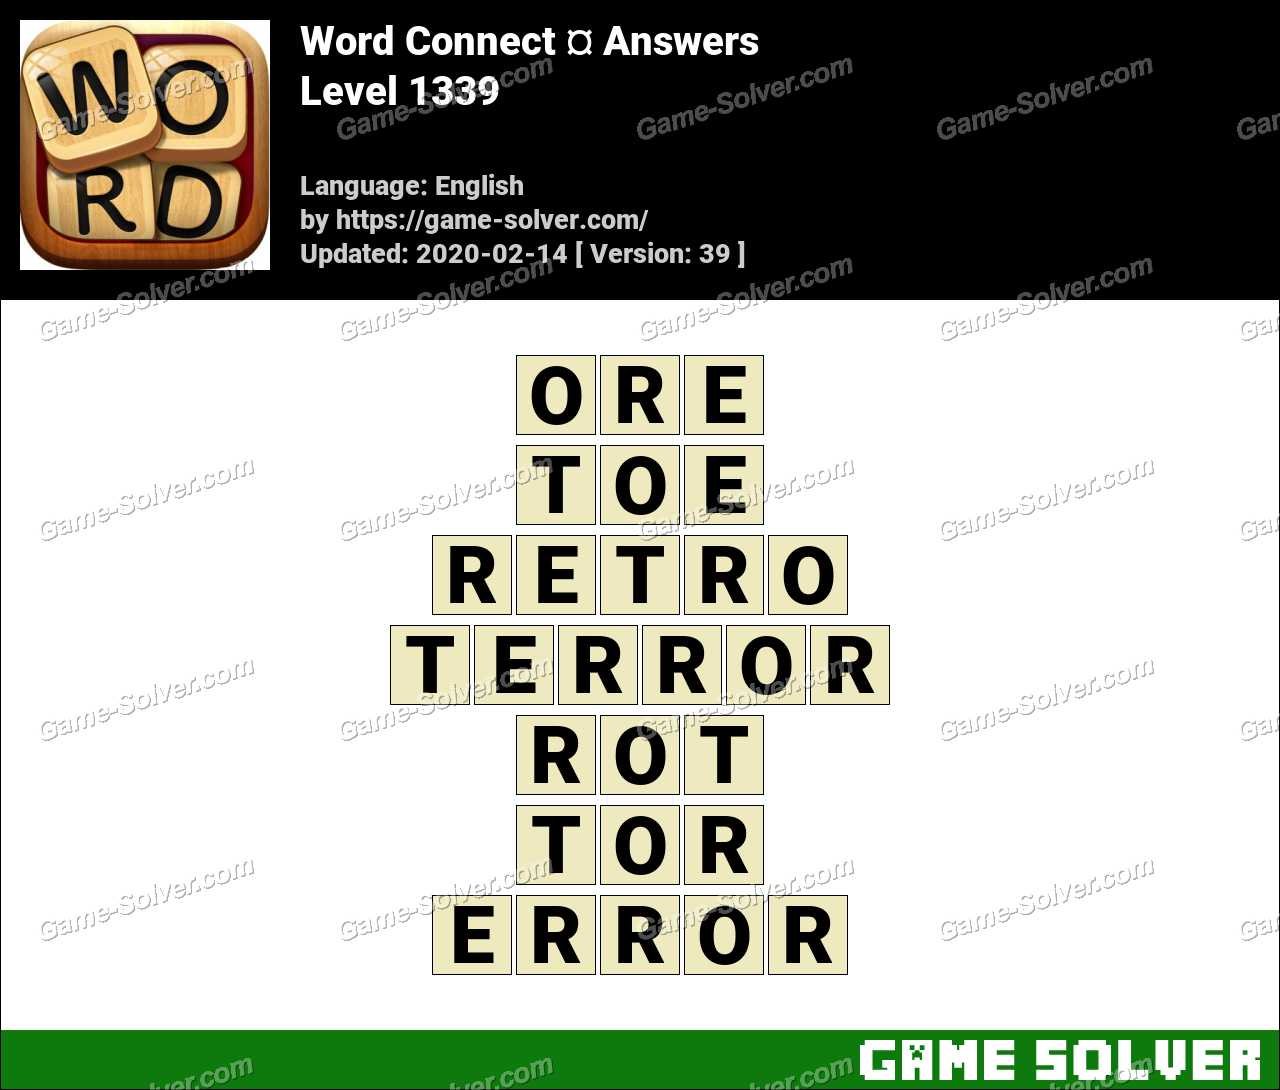 Word Connect Level 1339 Answers